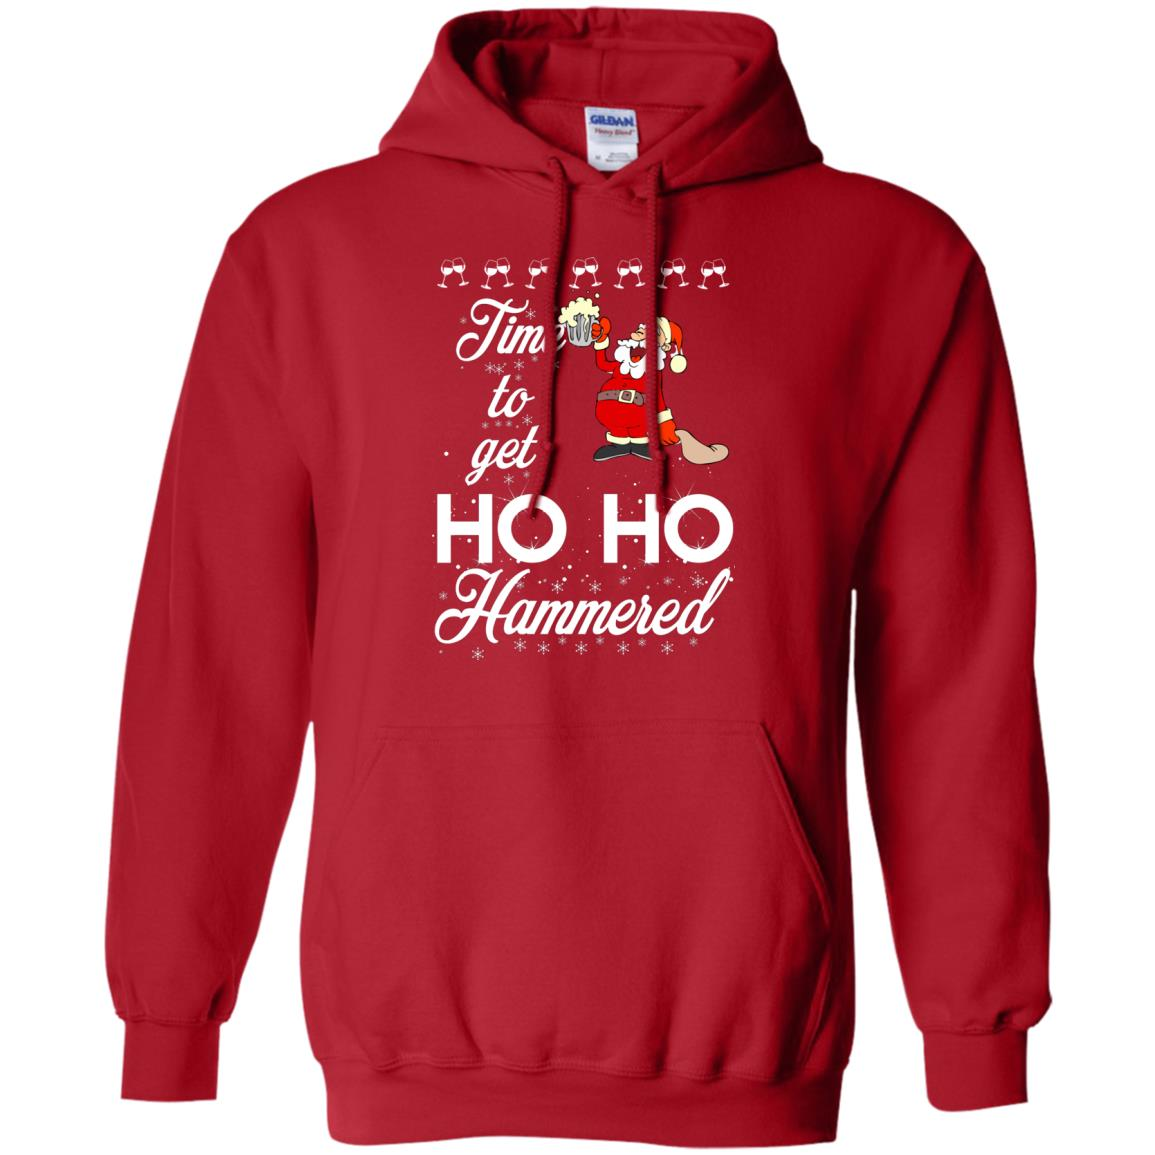 image 1653 - Time To Get Ho Ho Hammered Christmas Sweater, Shirt